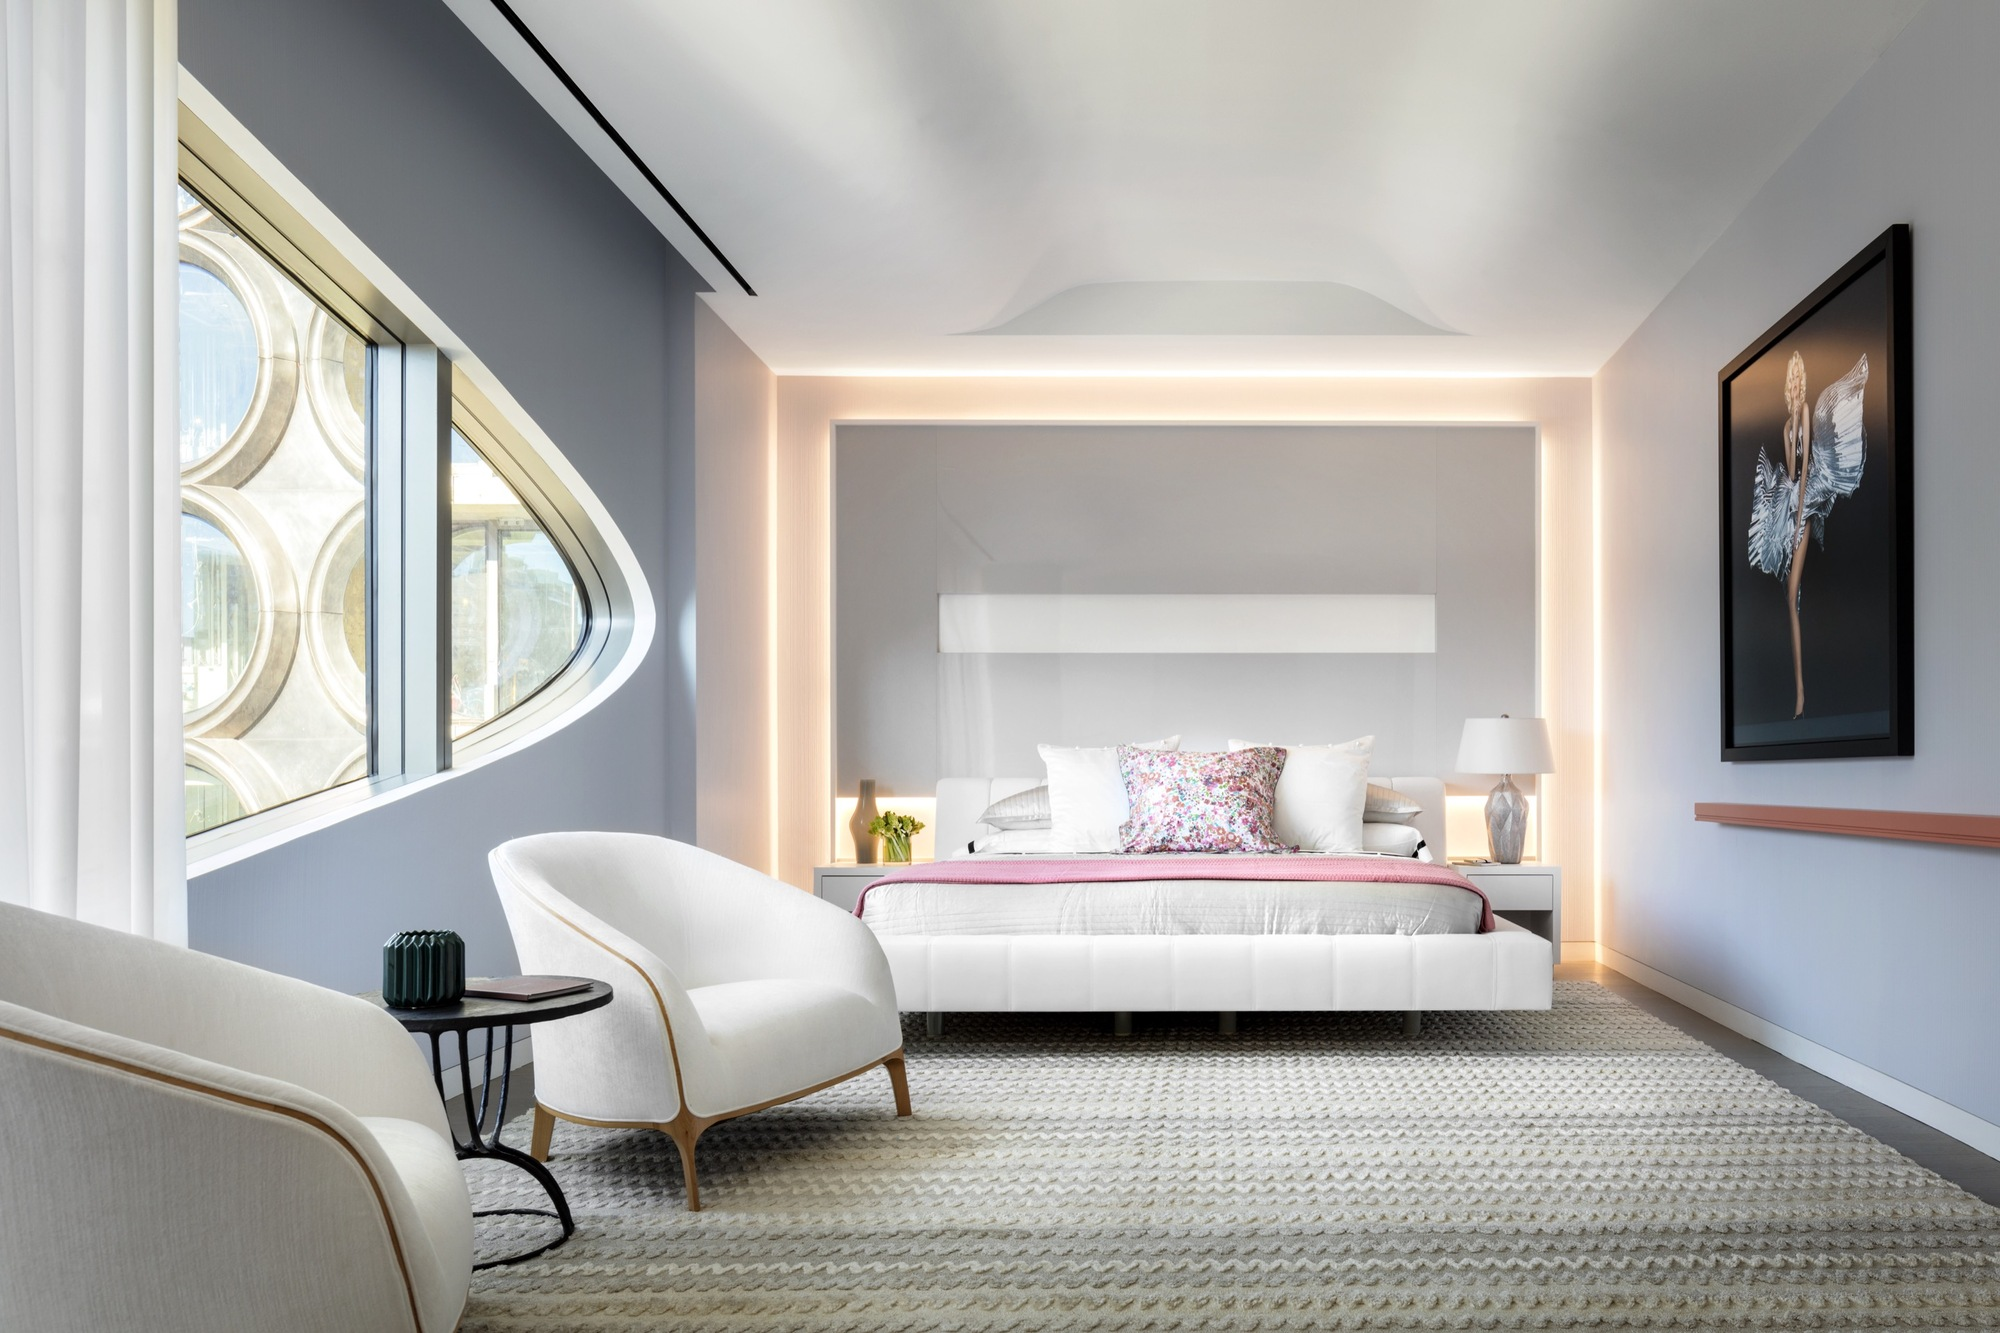 Gallery Of Interiors Of Zaha Hadid 39 S Nearly Complete High Line Residential Building Revealed 6